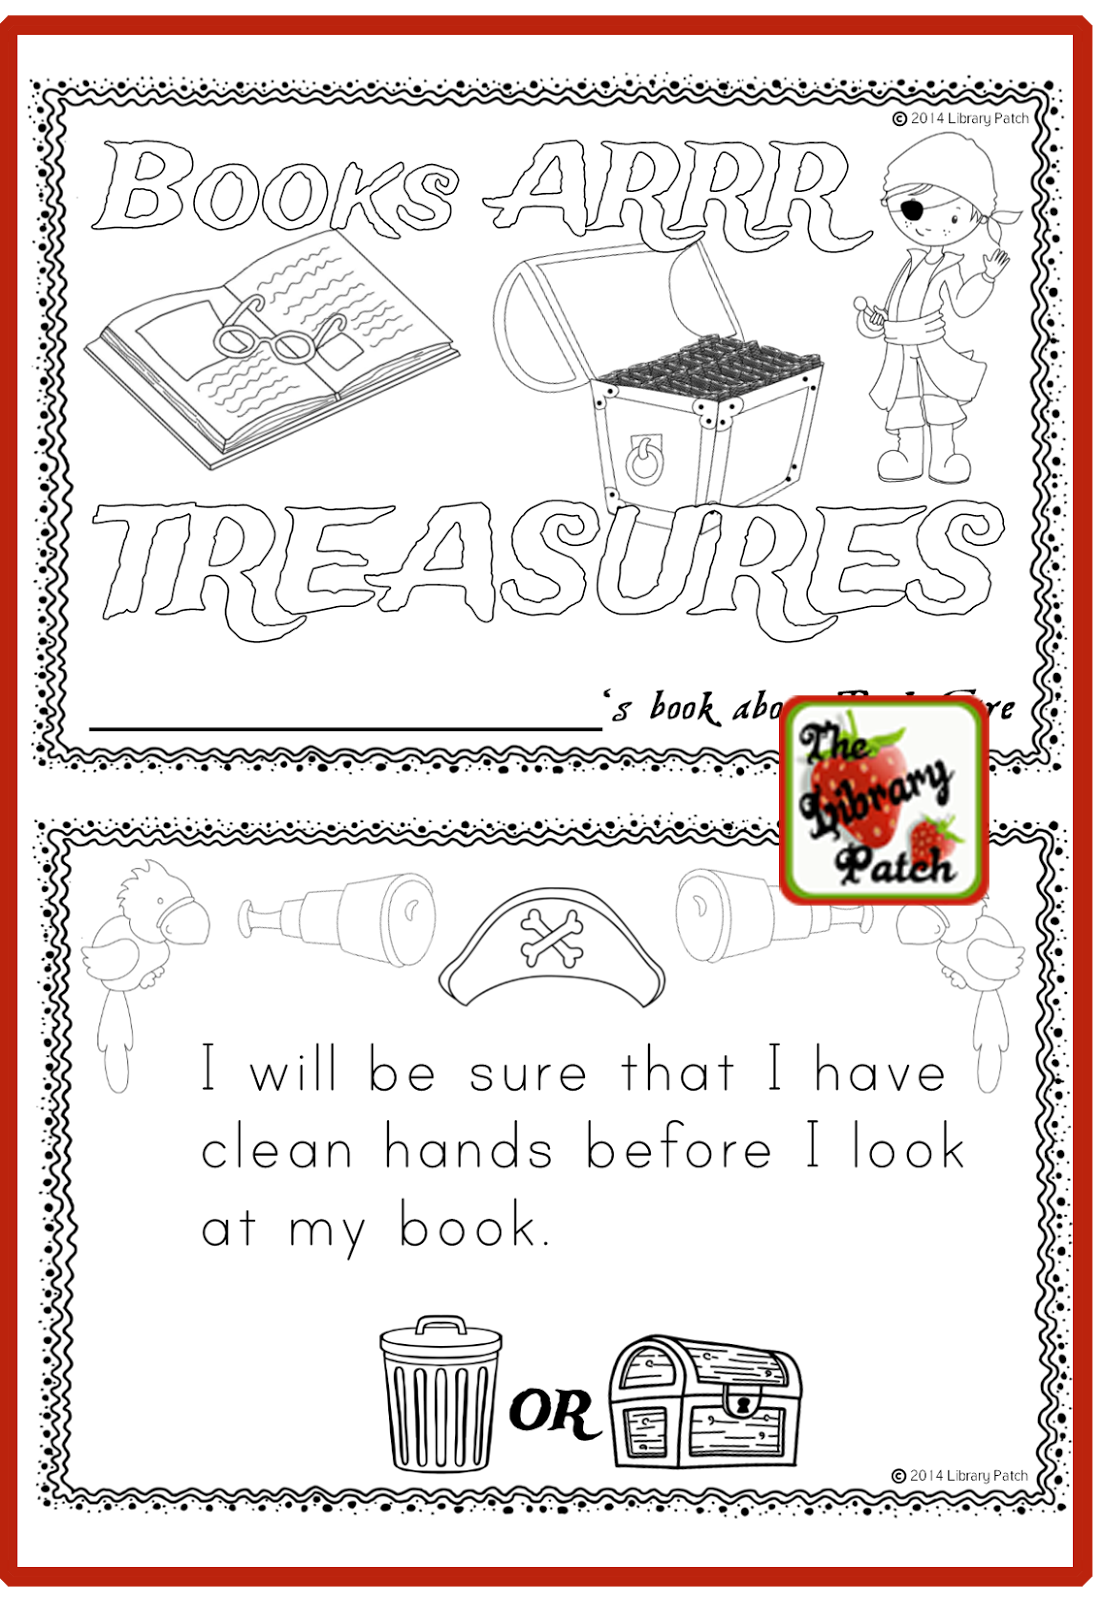 library patch 6 ideas for teaching book care